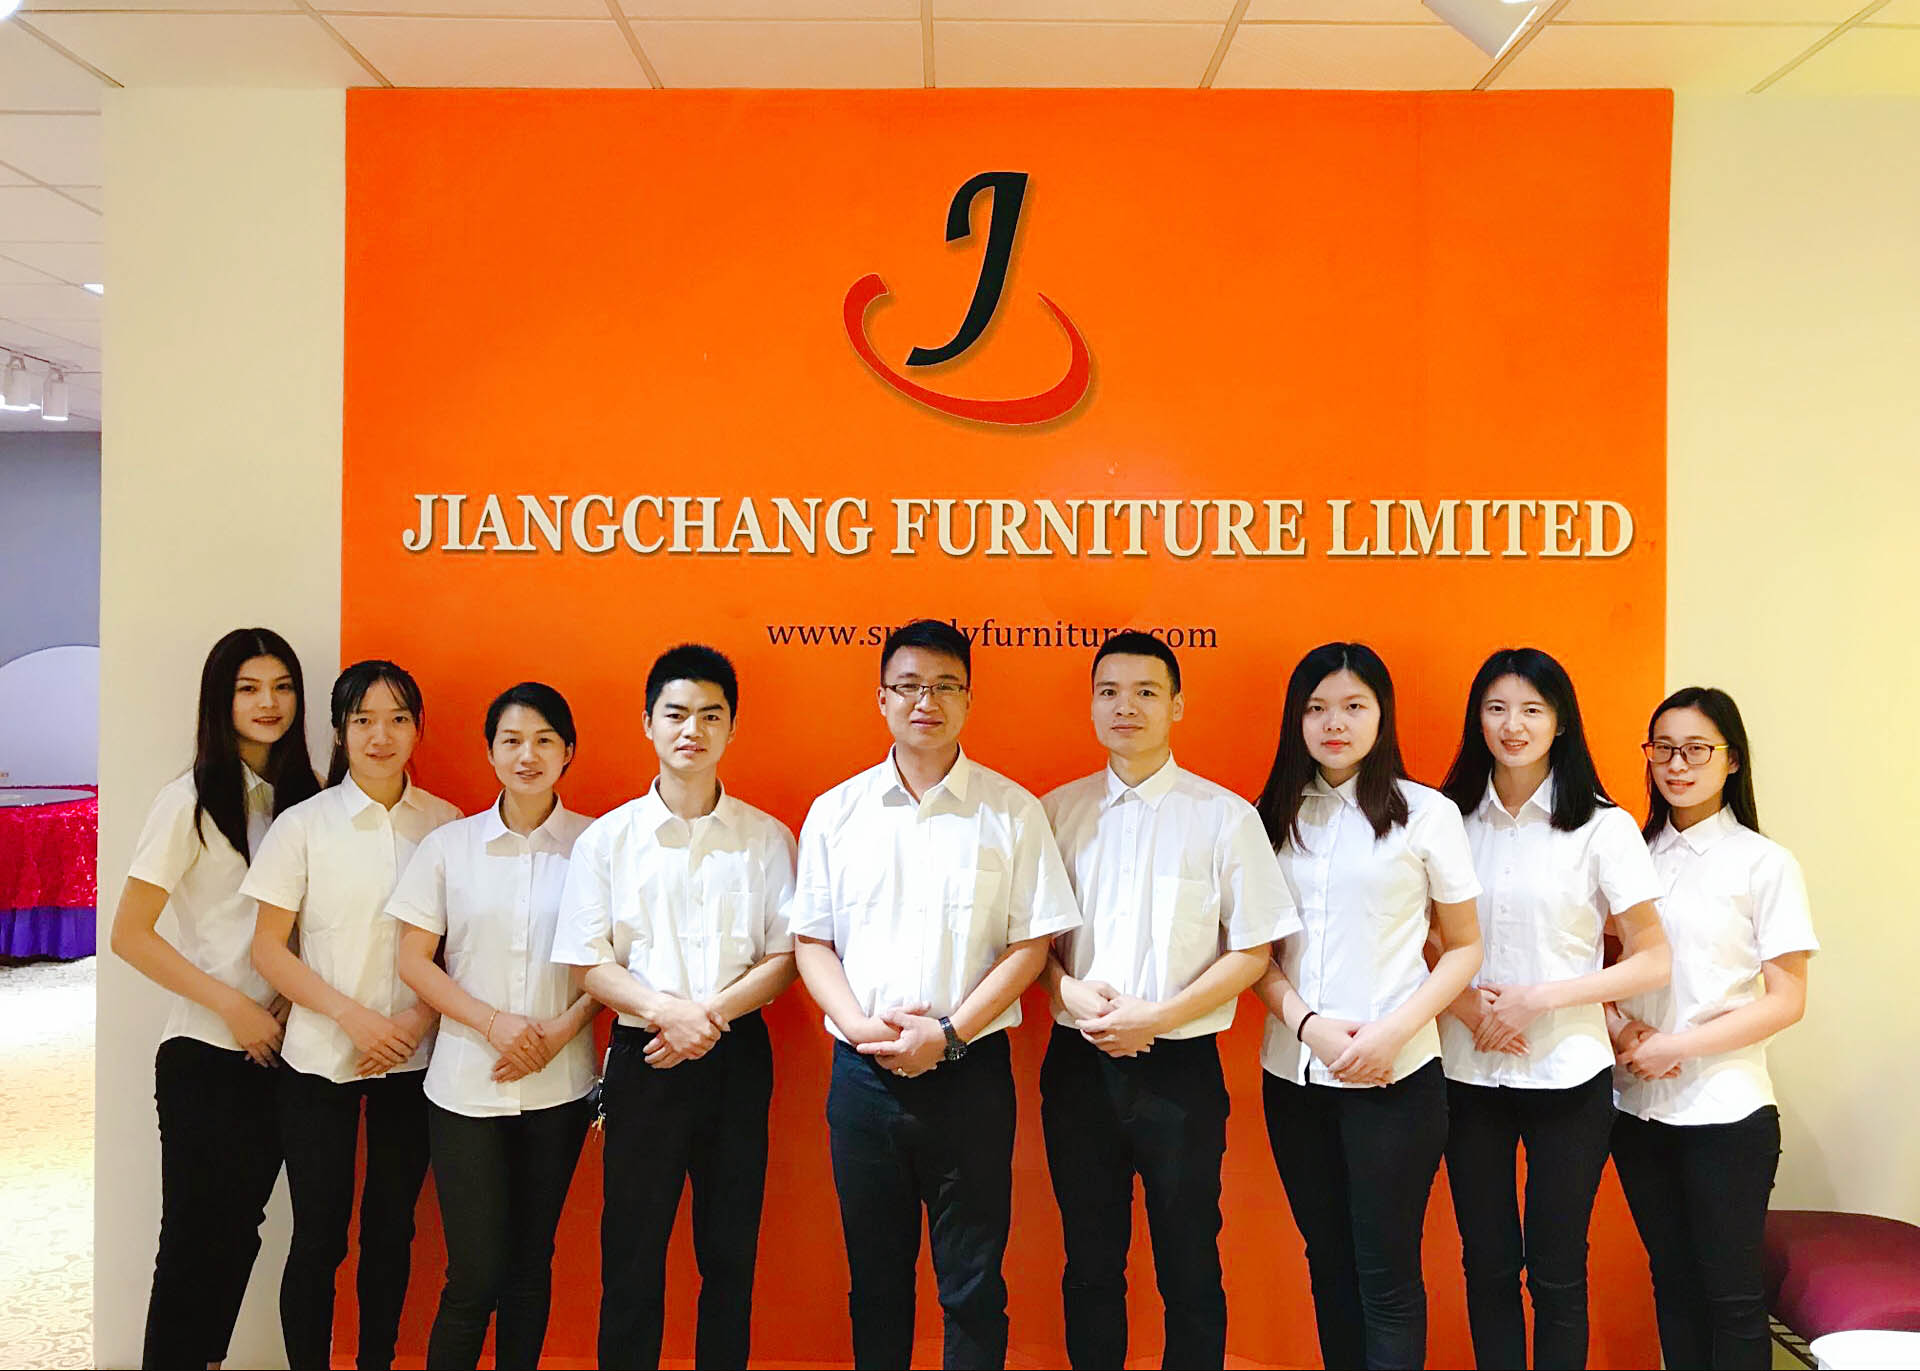 Jiangchang furniture team